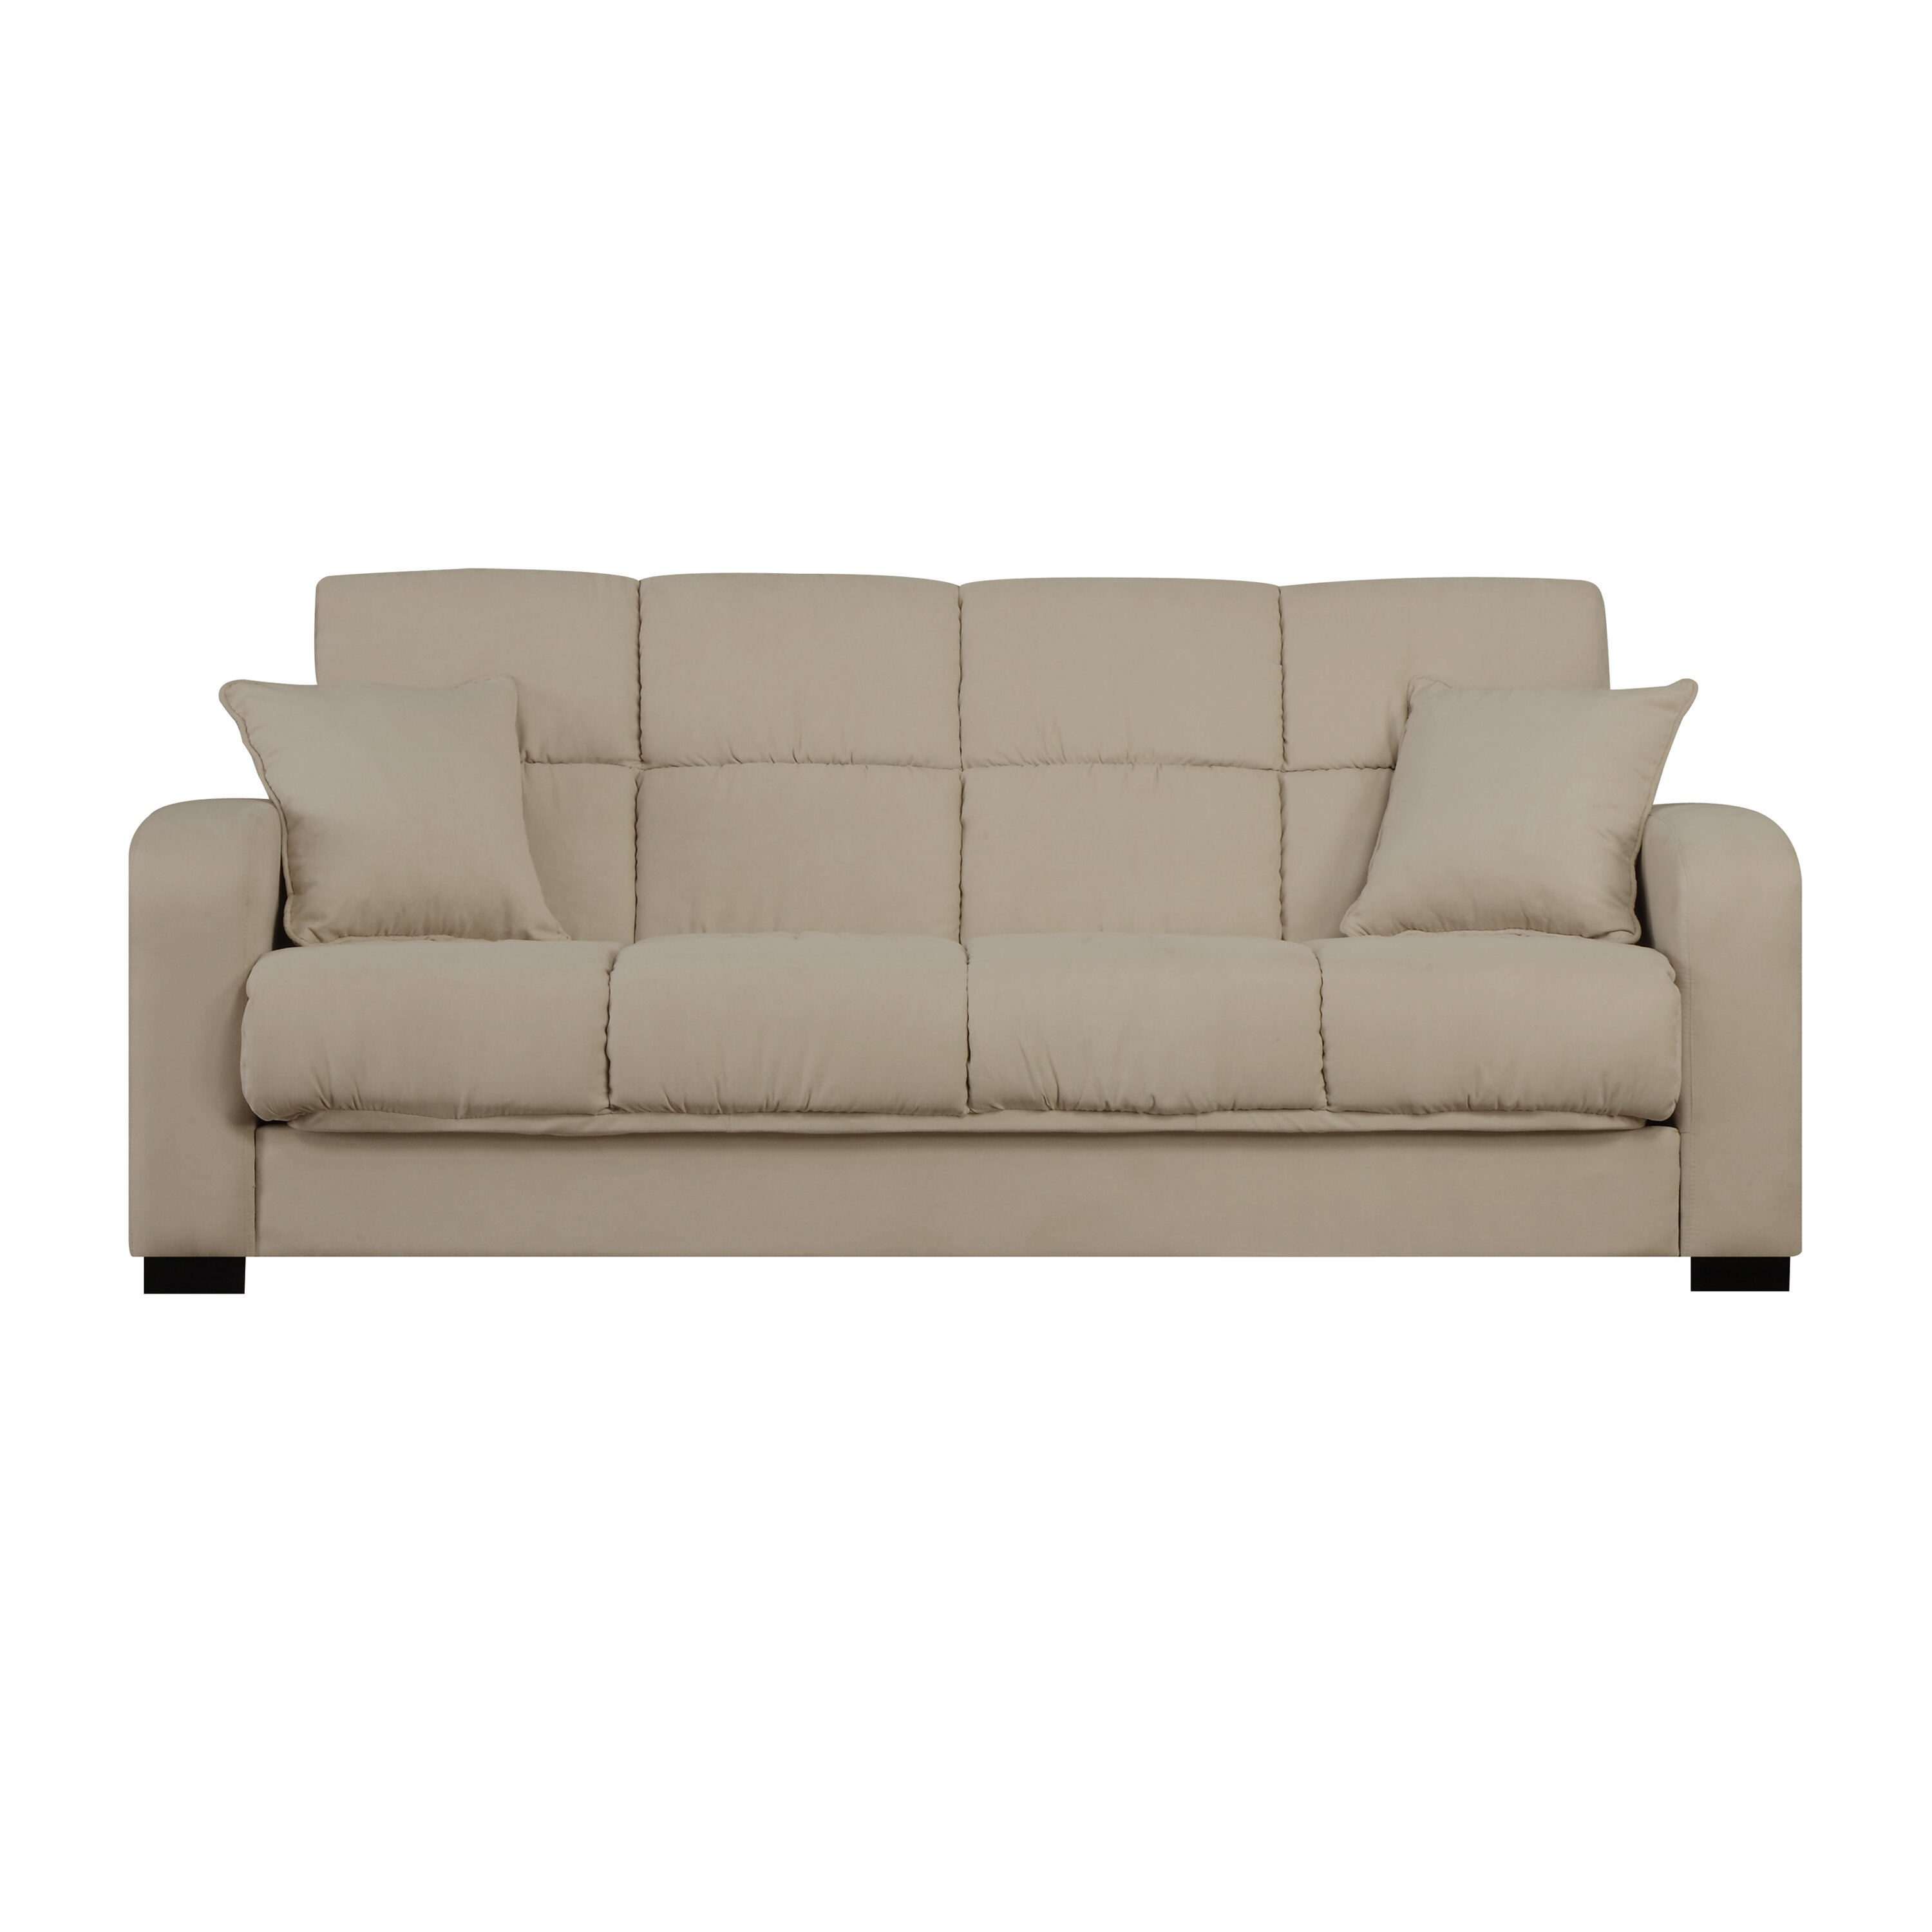 Andover mills richardson full convertible sleeper sofa for Convertible furniture